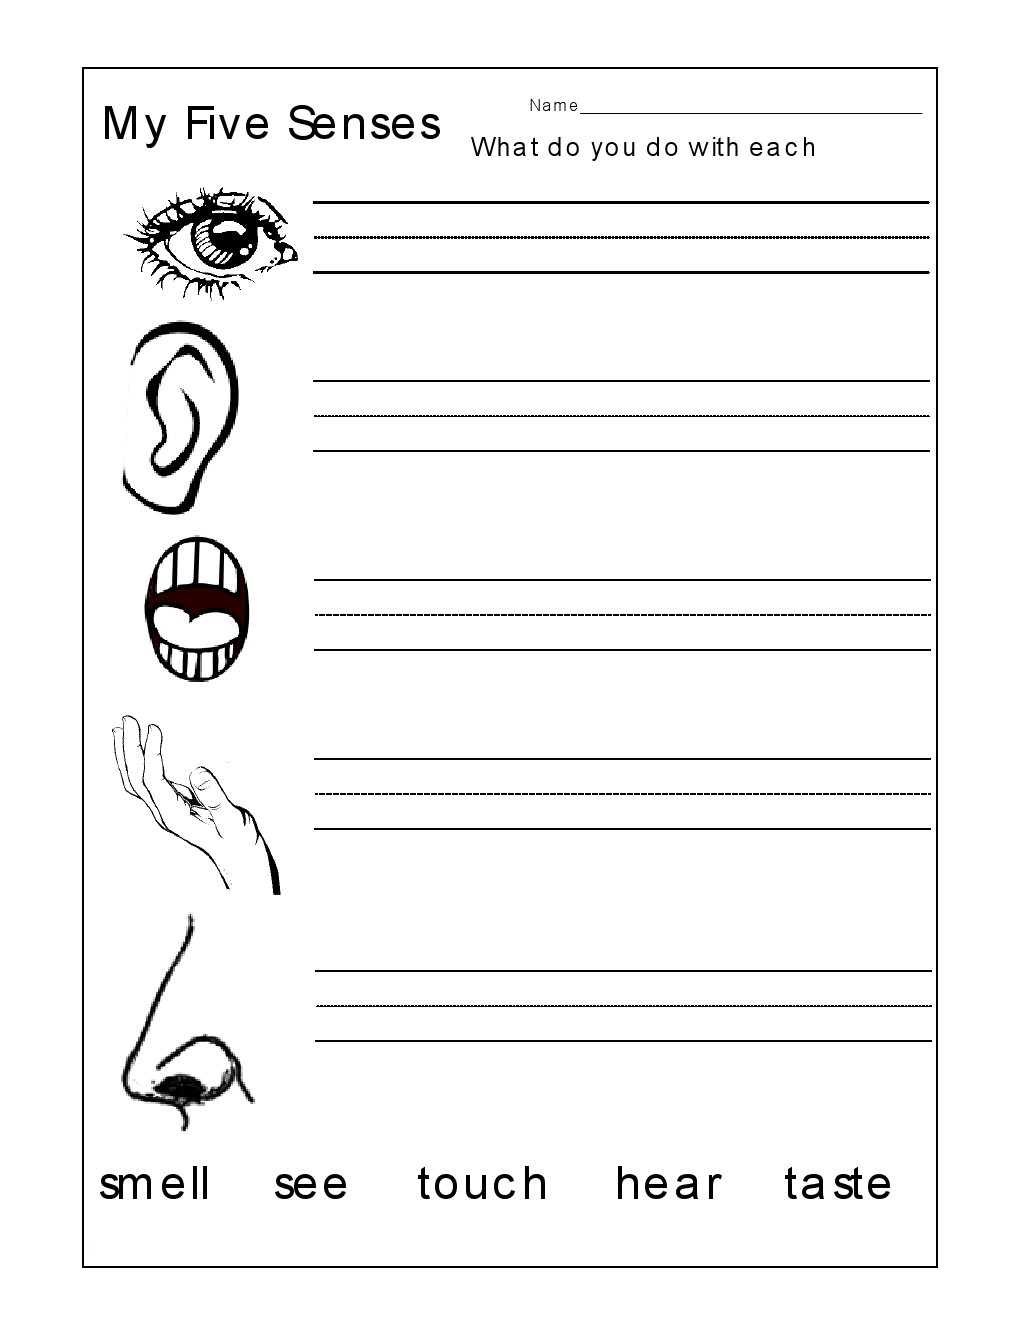 Kindergarten Worksheets Kindergarten Worksheets The 5 Senses – 5 Senses Kindergarten Worksheets